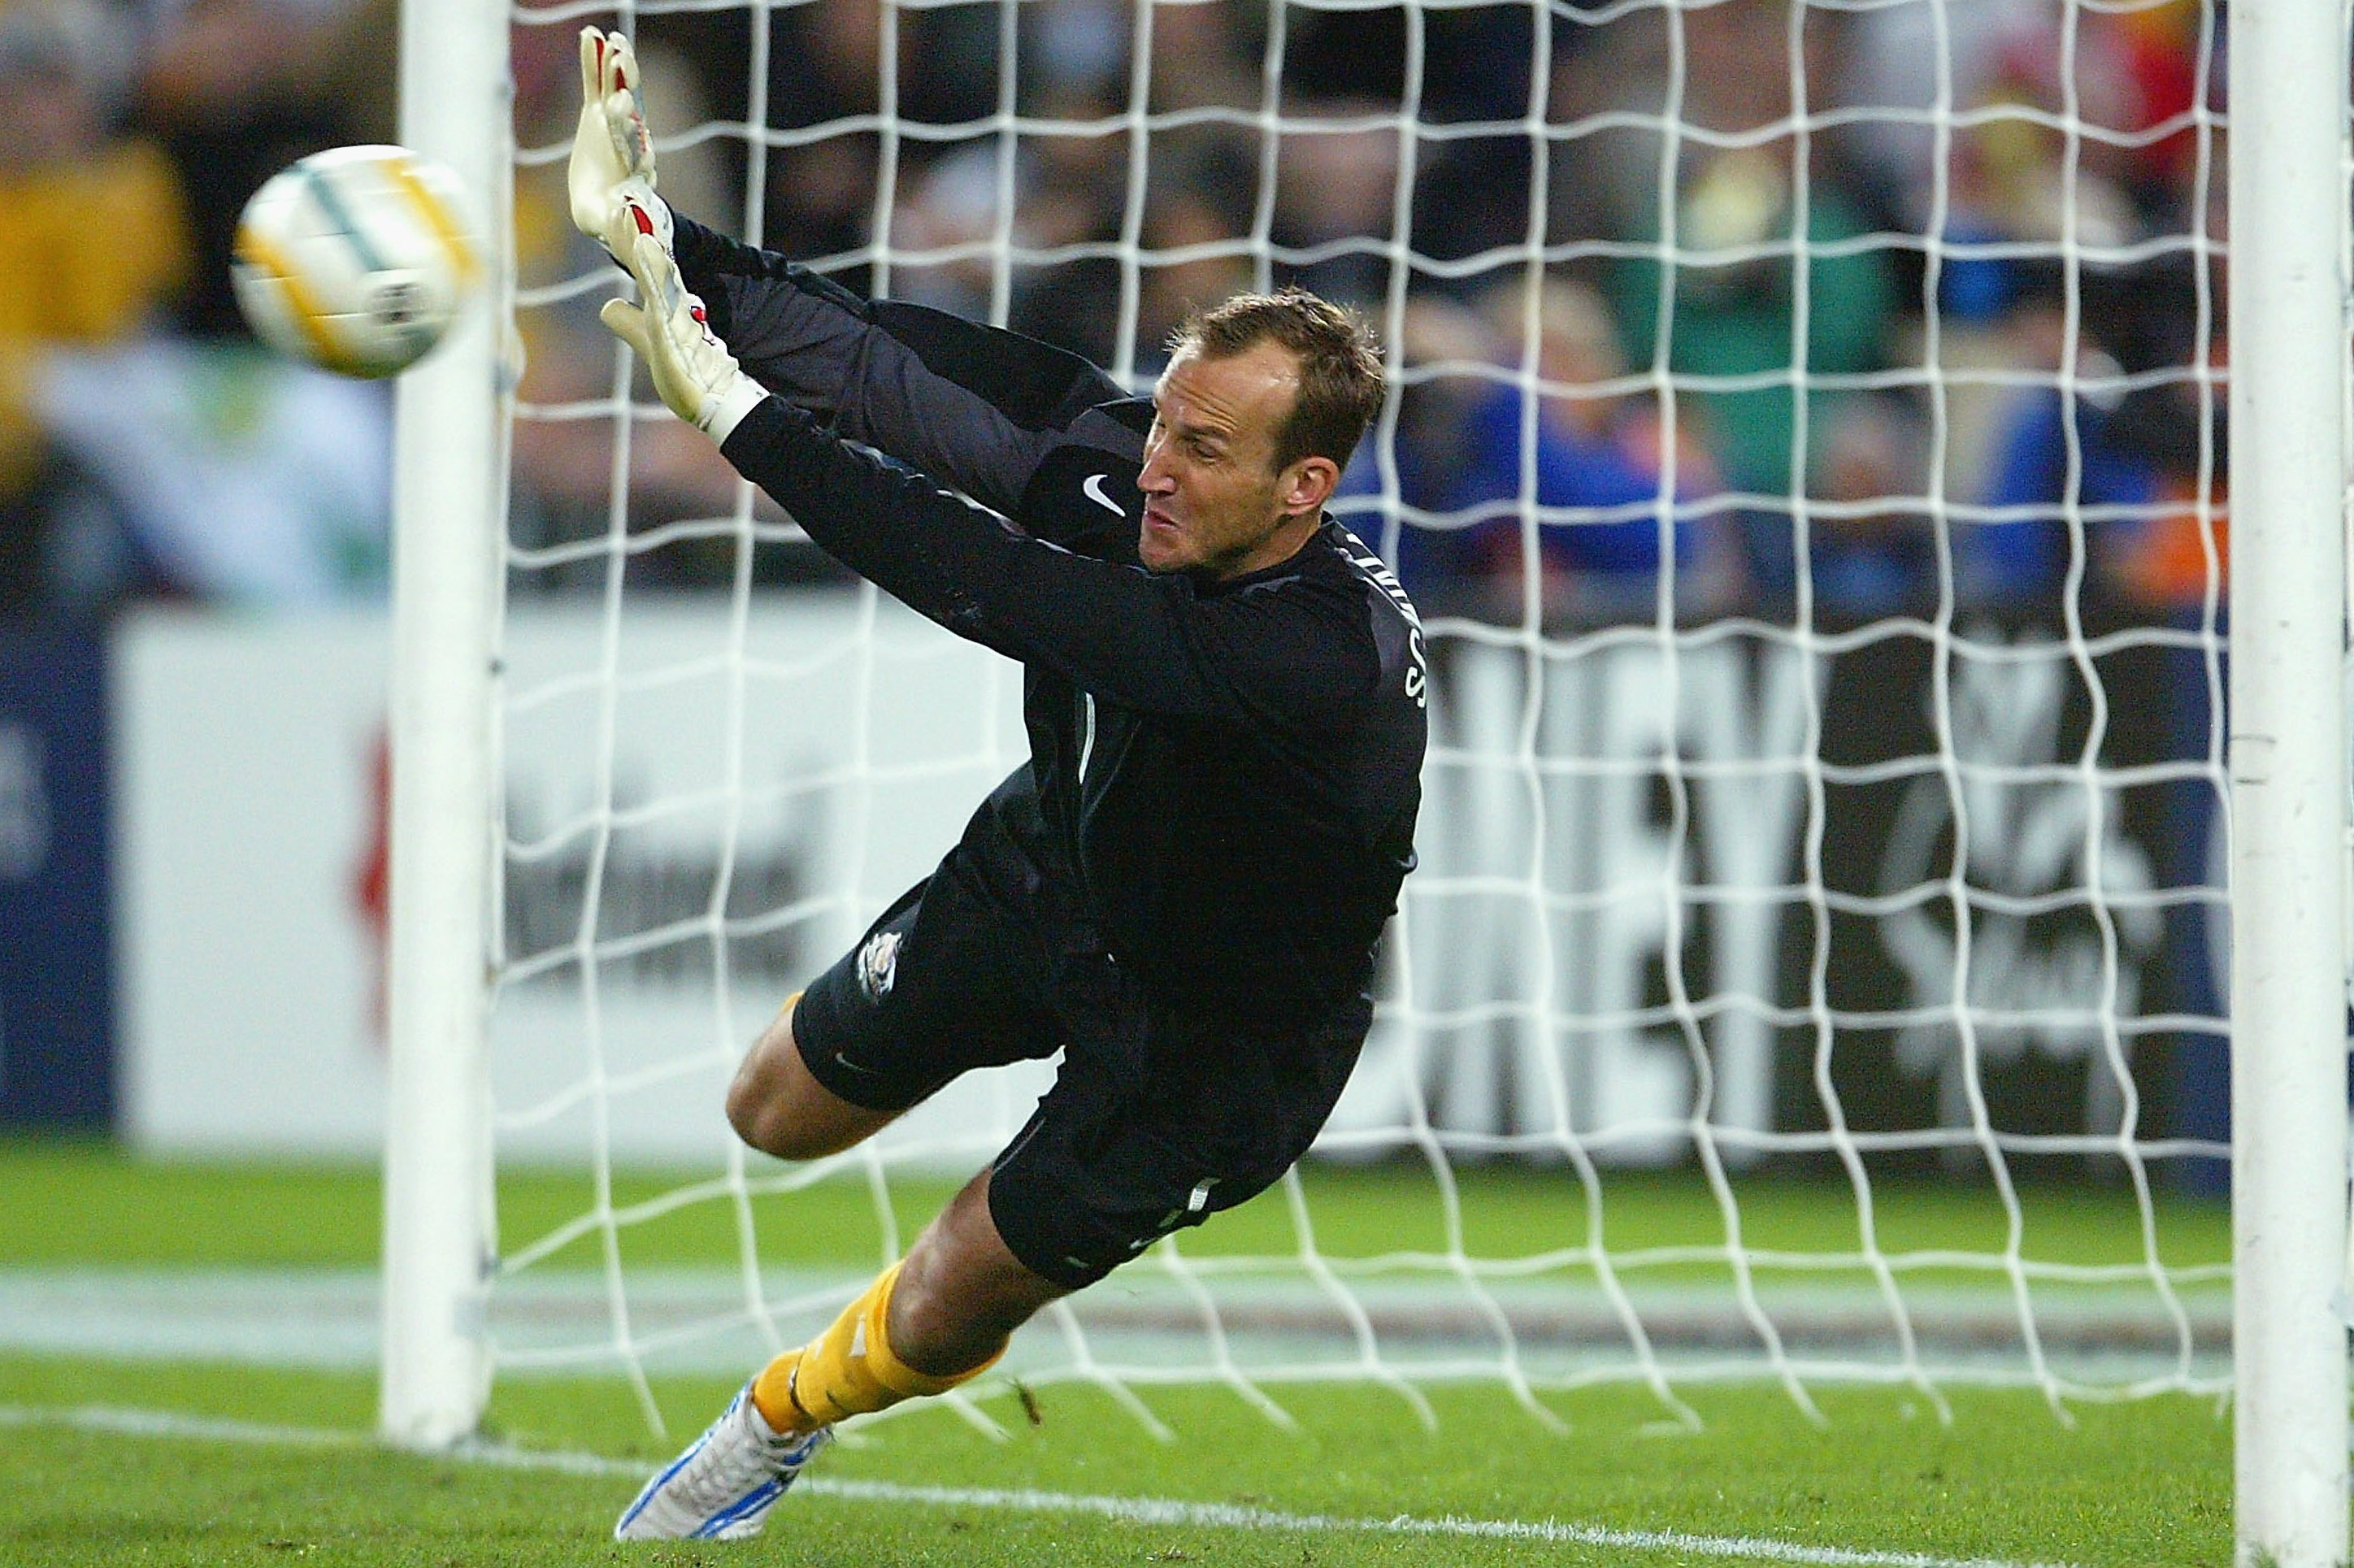 Mark Schwarzer makes a save in the shootout against Uruguay in 2005.